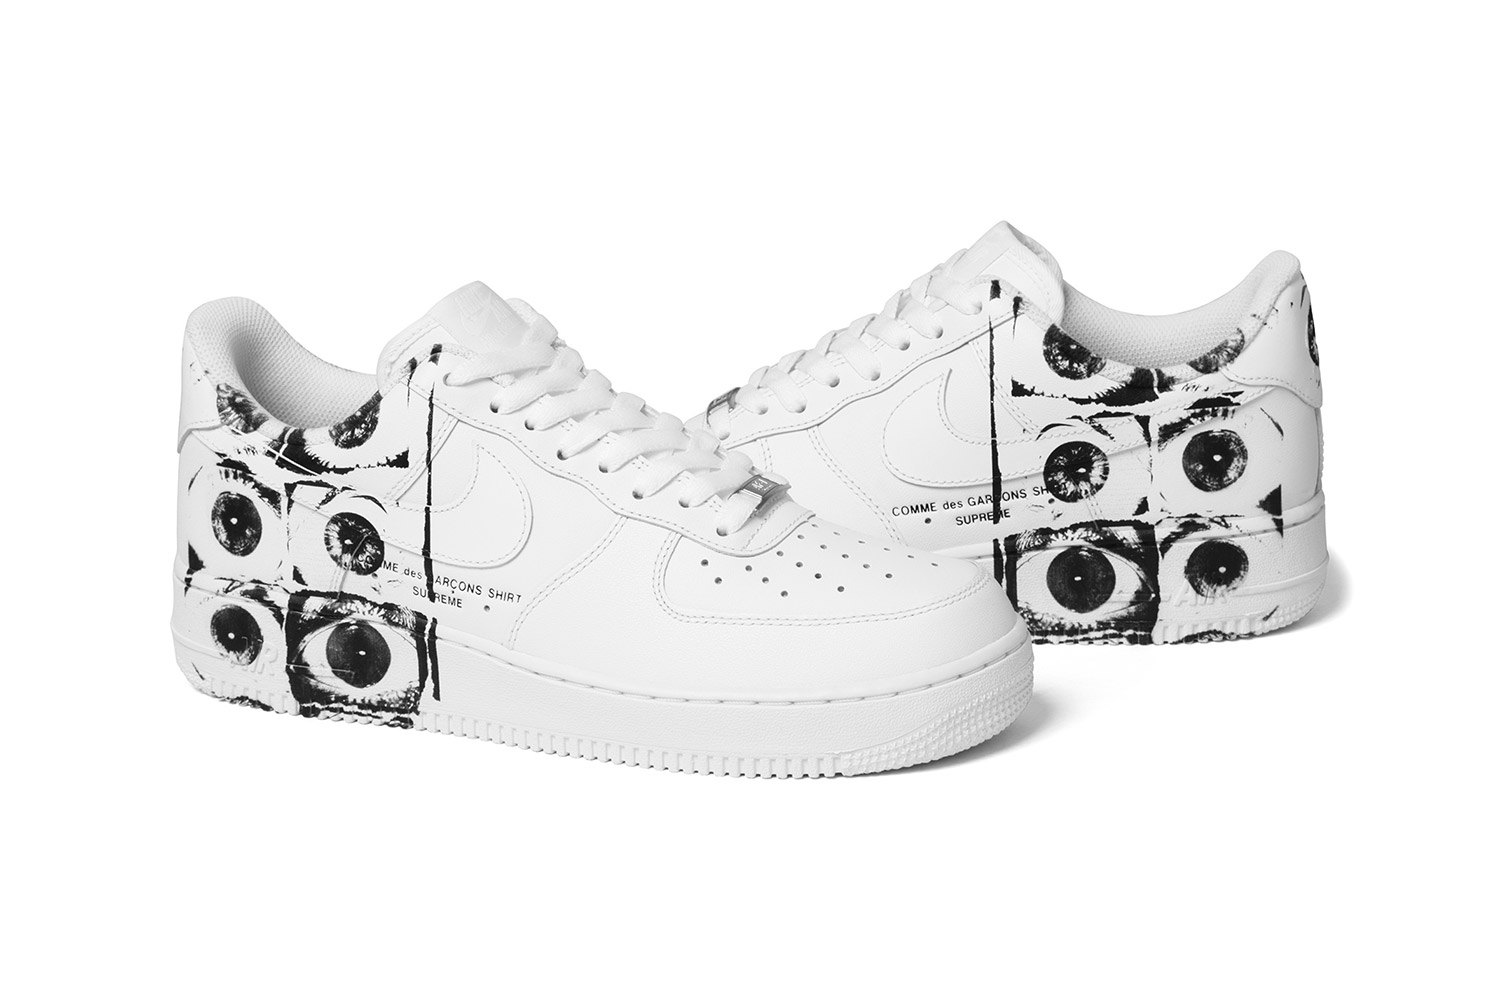 competitive price 1aa8d ba8ed The Supreme x COMME des GARÇONS SHIRT x Nike Air Force 1 Low ...